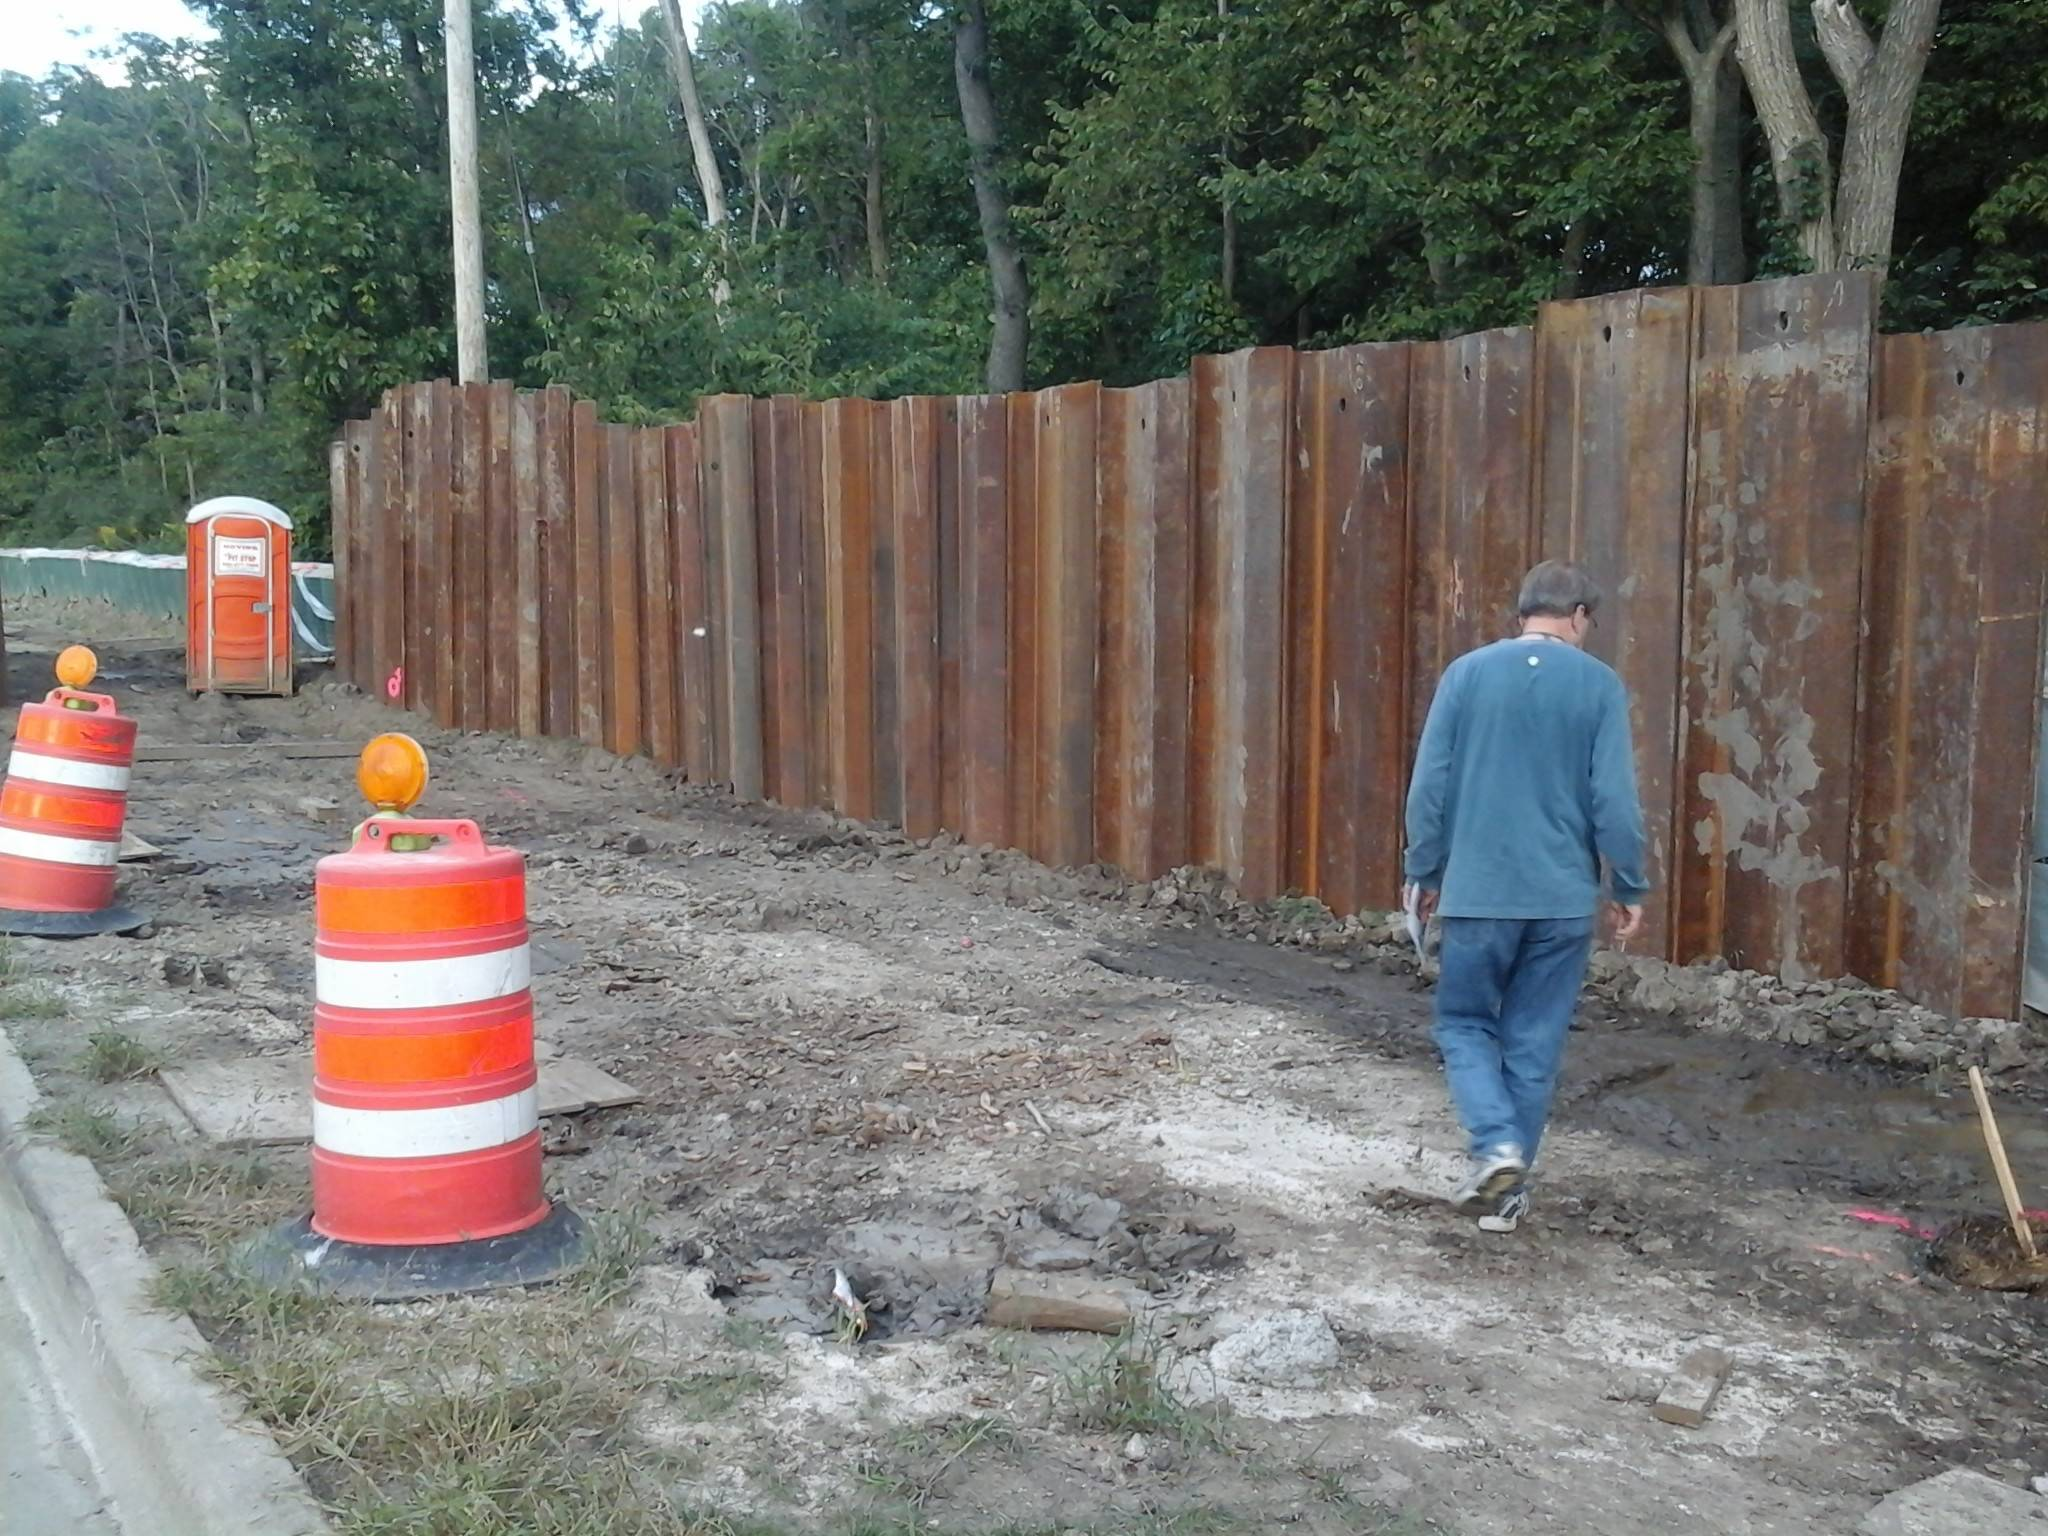 Trustee Paul Hoefert examines the progress of filling the 600-foot gap in the Levee 37 barrier along Des Plaines River Road in Prospect Heights. Work on the barrier should be completed by the end of the year.